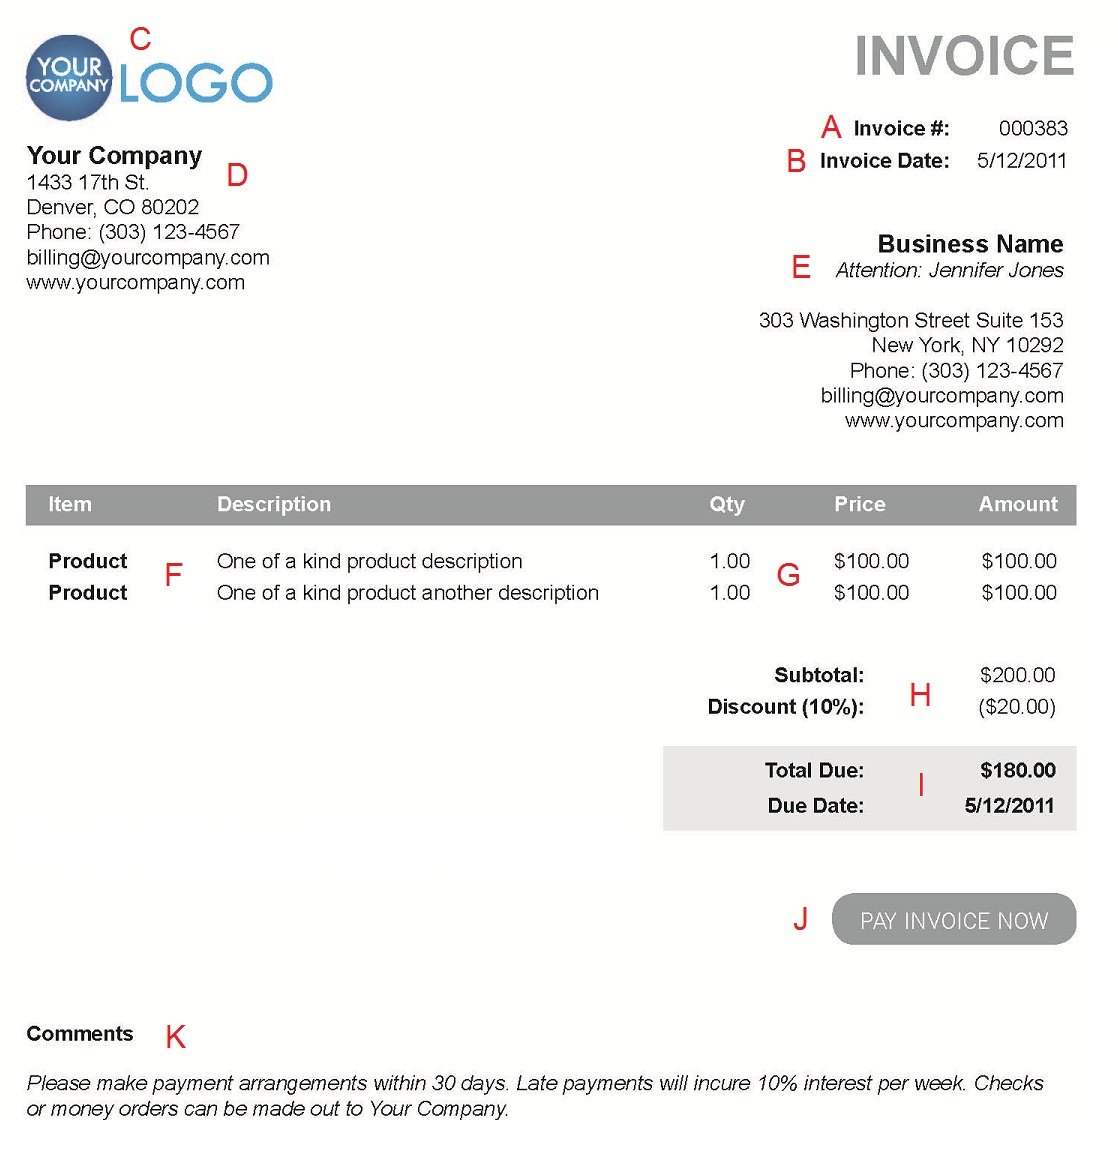 Carsforlessus  Unique The  Different Sections Of An Electronic Payment Invoice With Fetching A  With Appealing Jeep Wrangler Invoice Price Also Car Invoice Pricing In Addition Free Blank Invoice Form And What Is An Invoice Price As Well As Aynax Free Invoice Additionally Edmunds Invoice Price New Car From Paysimplecom With Carsforlessus  Fetching The  Different Sections Of An Electronic Payment Invoice With Appealing A  And Unique Jeep Wrangler Invoice Price Also Car Invoice Pricing In Addition Free Blank Invoice Form From Paysimplecom